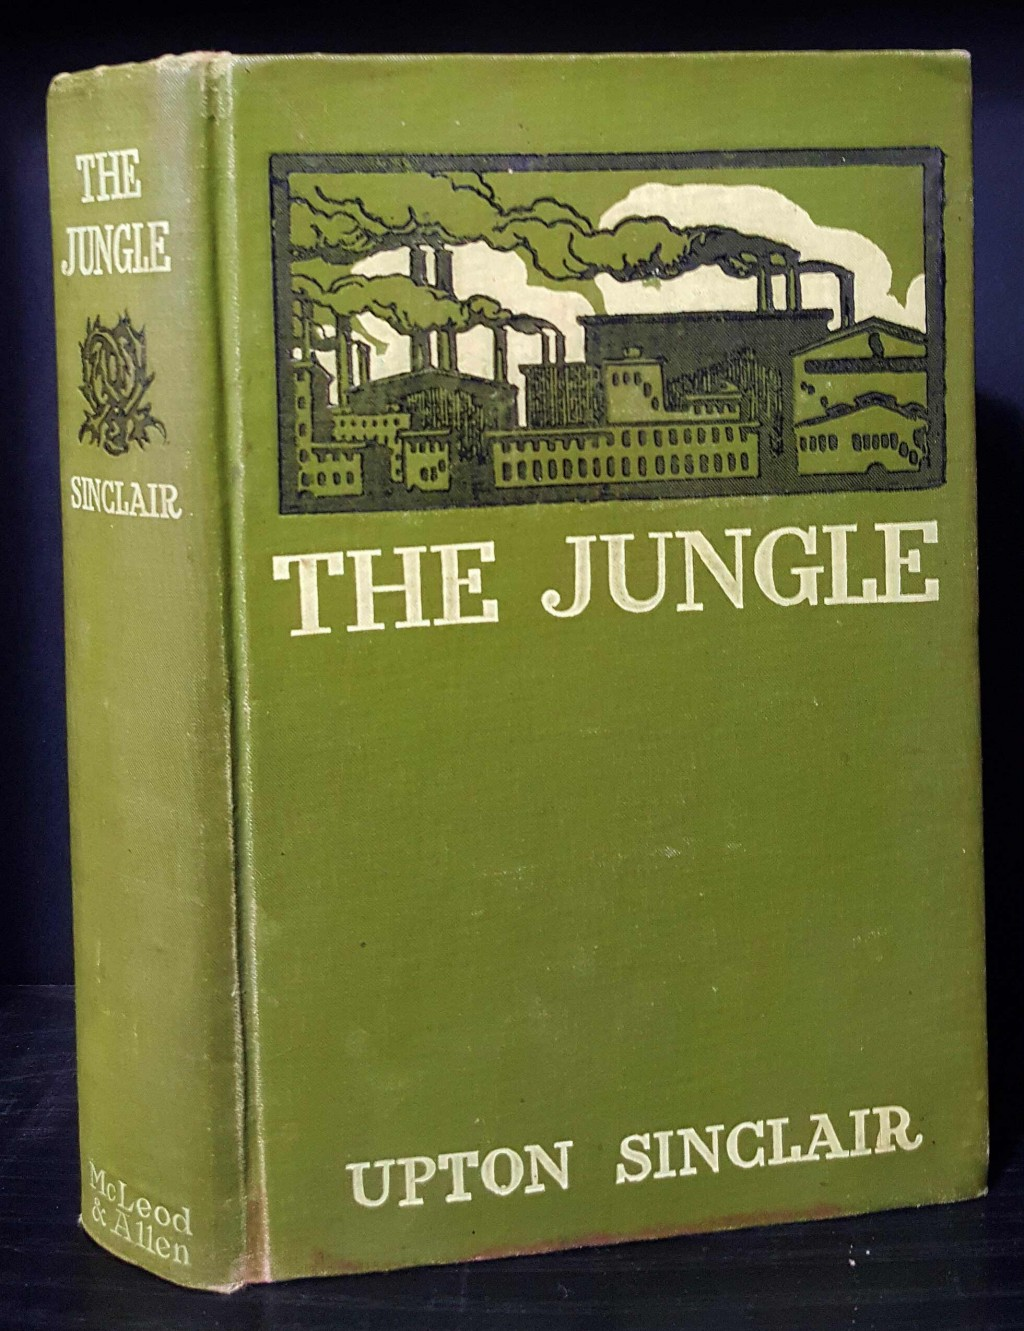 003 Essay Example The Jungle Upton Sinclair Book Rare Review Large